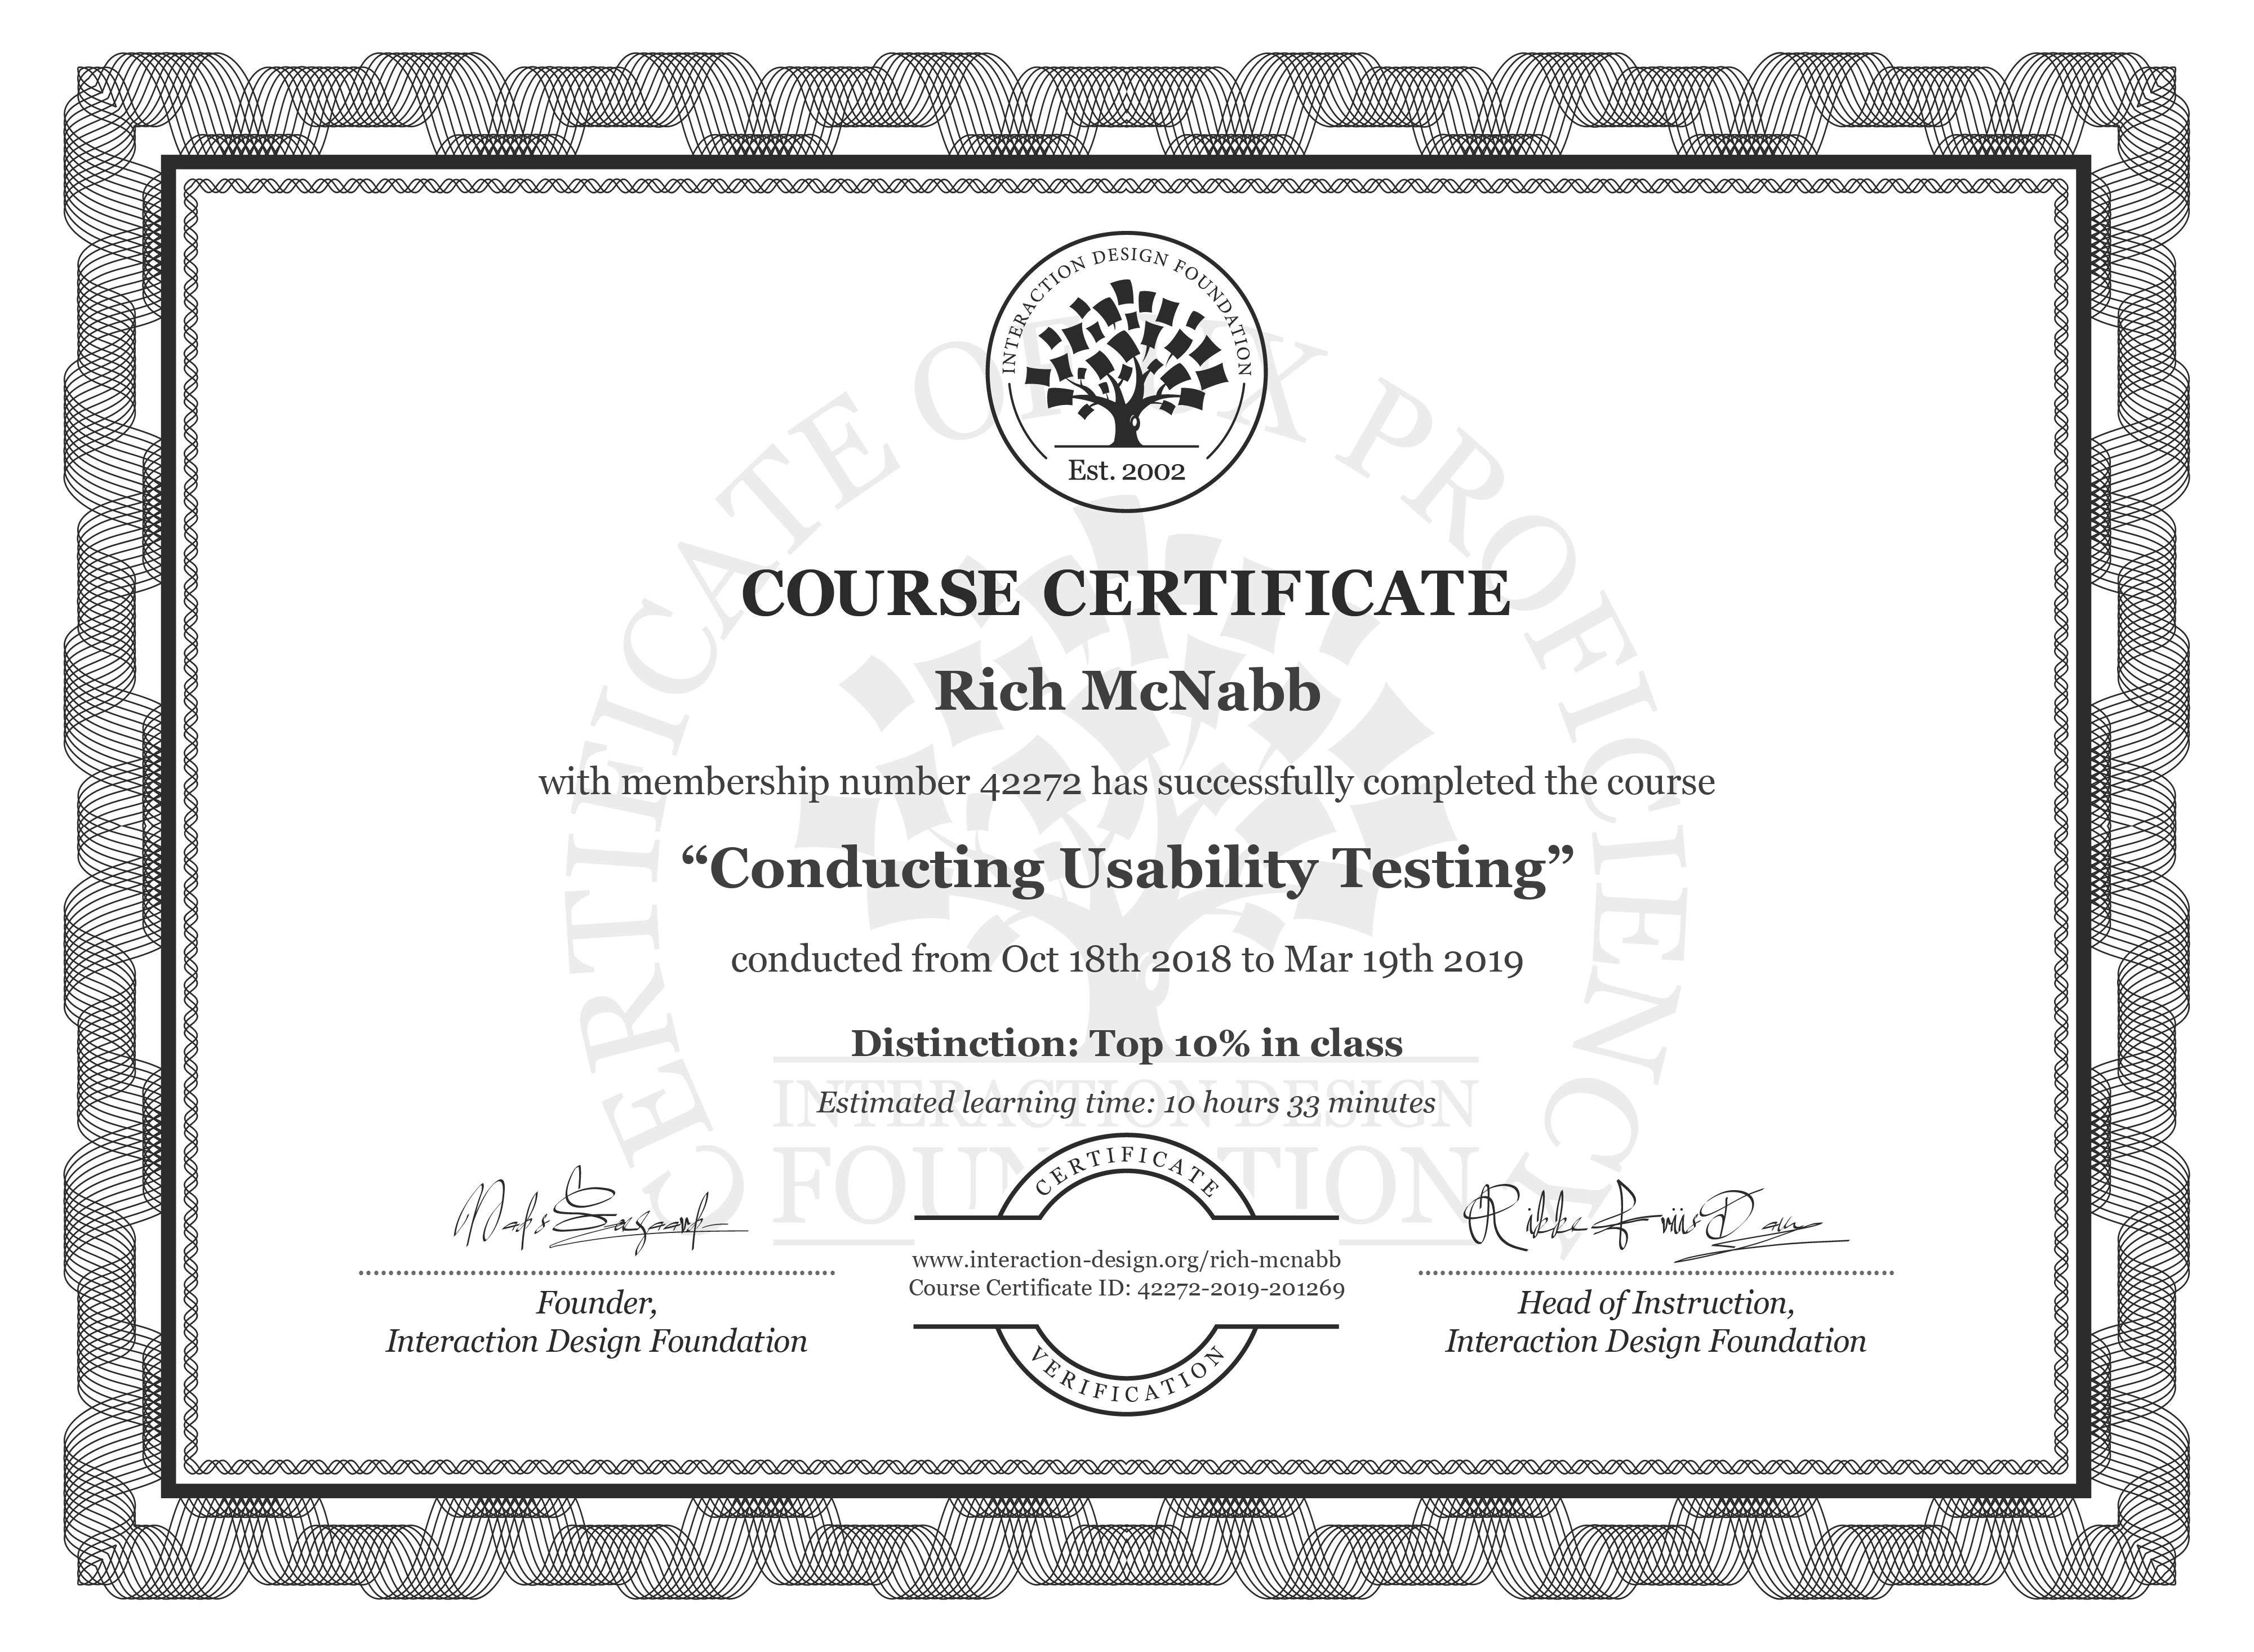 Rich McNabb: Course Certificate - Conducting Usability Testing